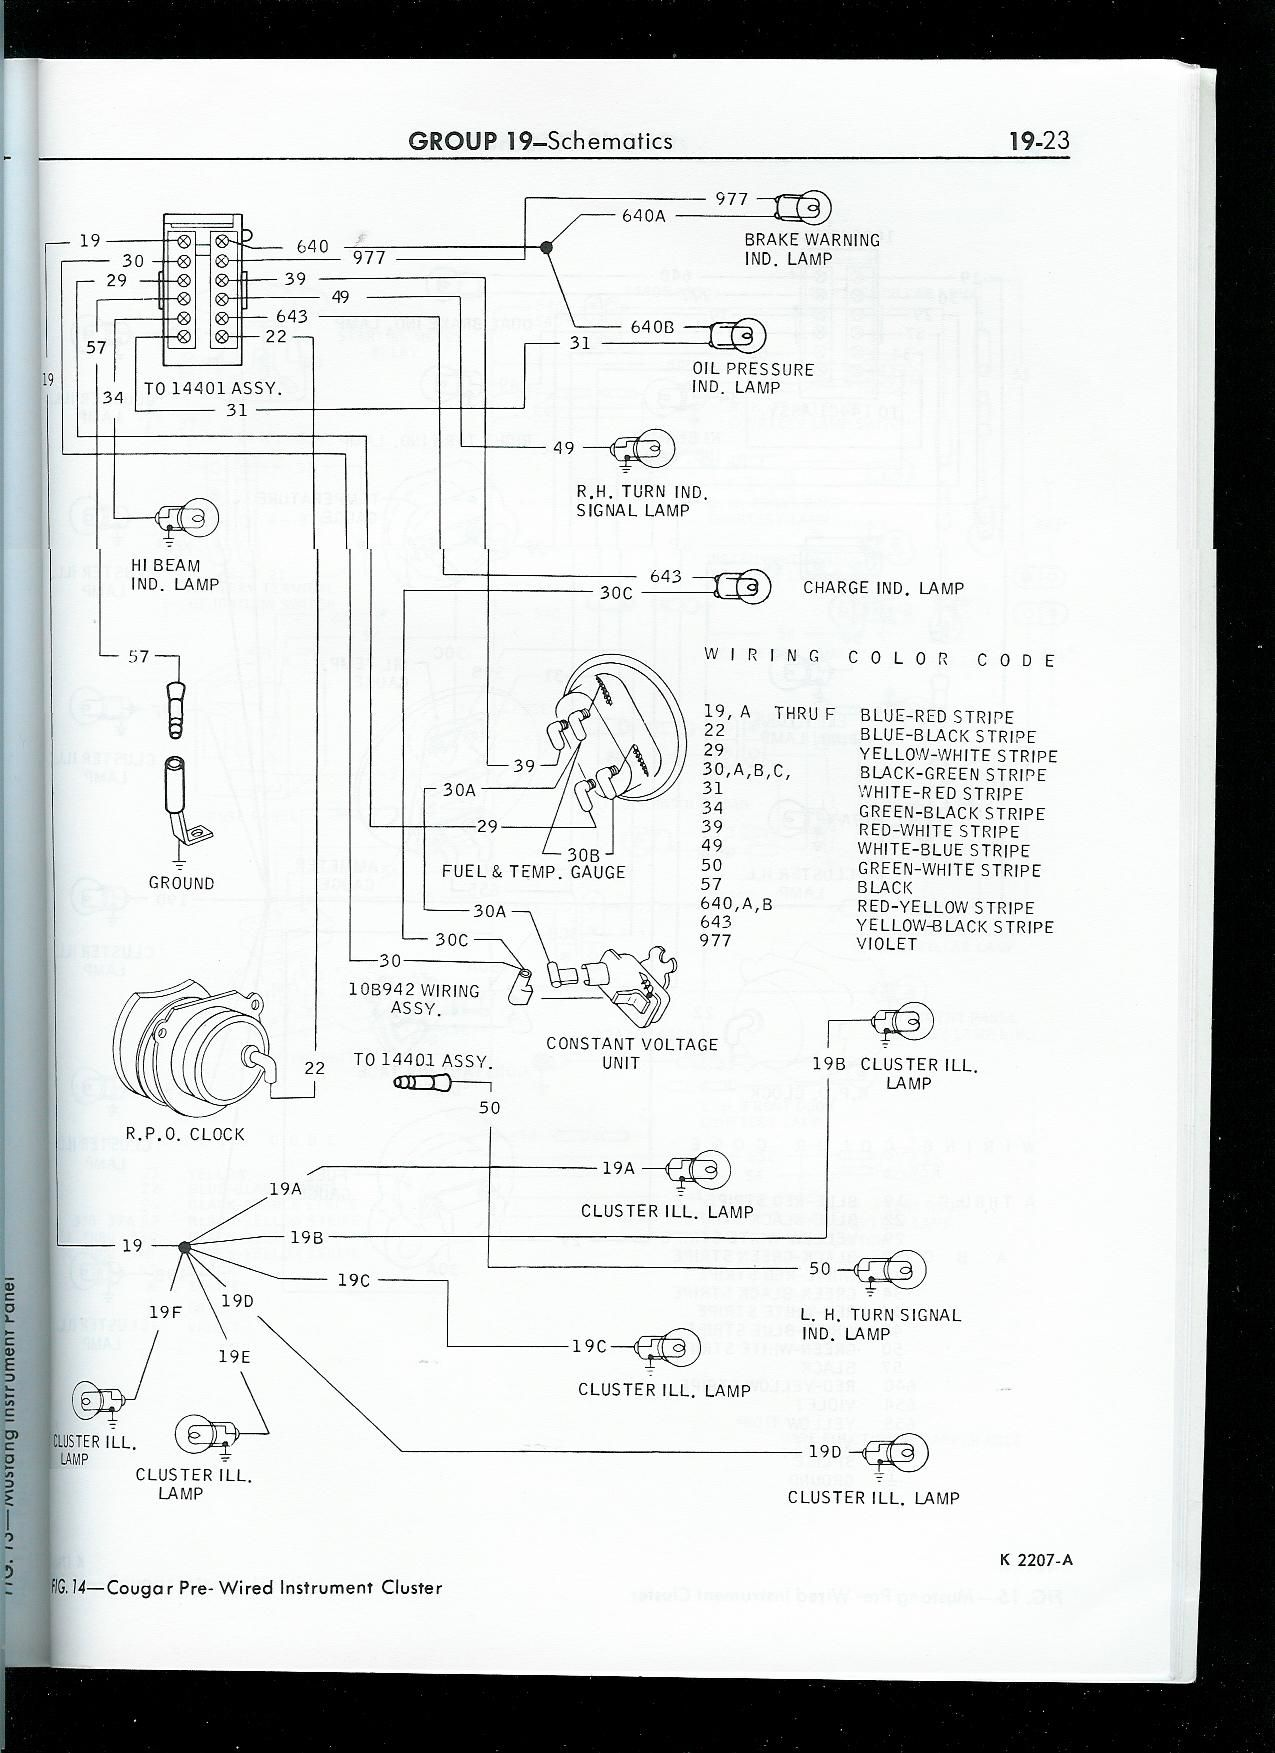 Aa Dc A F Abe E on 1968 Mustang Wiring Diagram